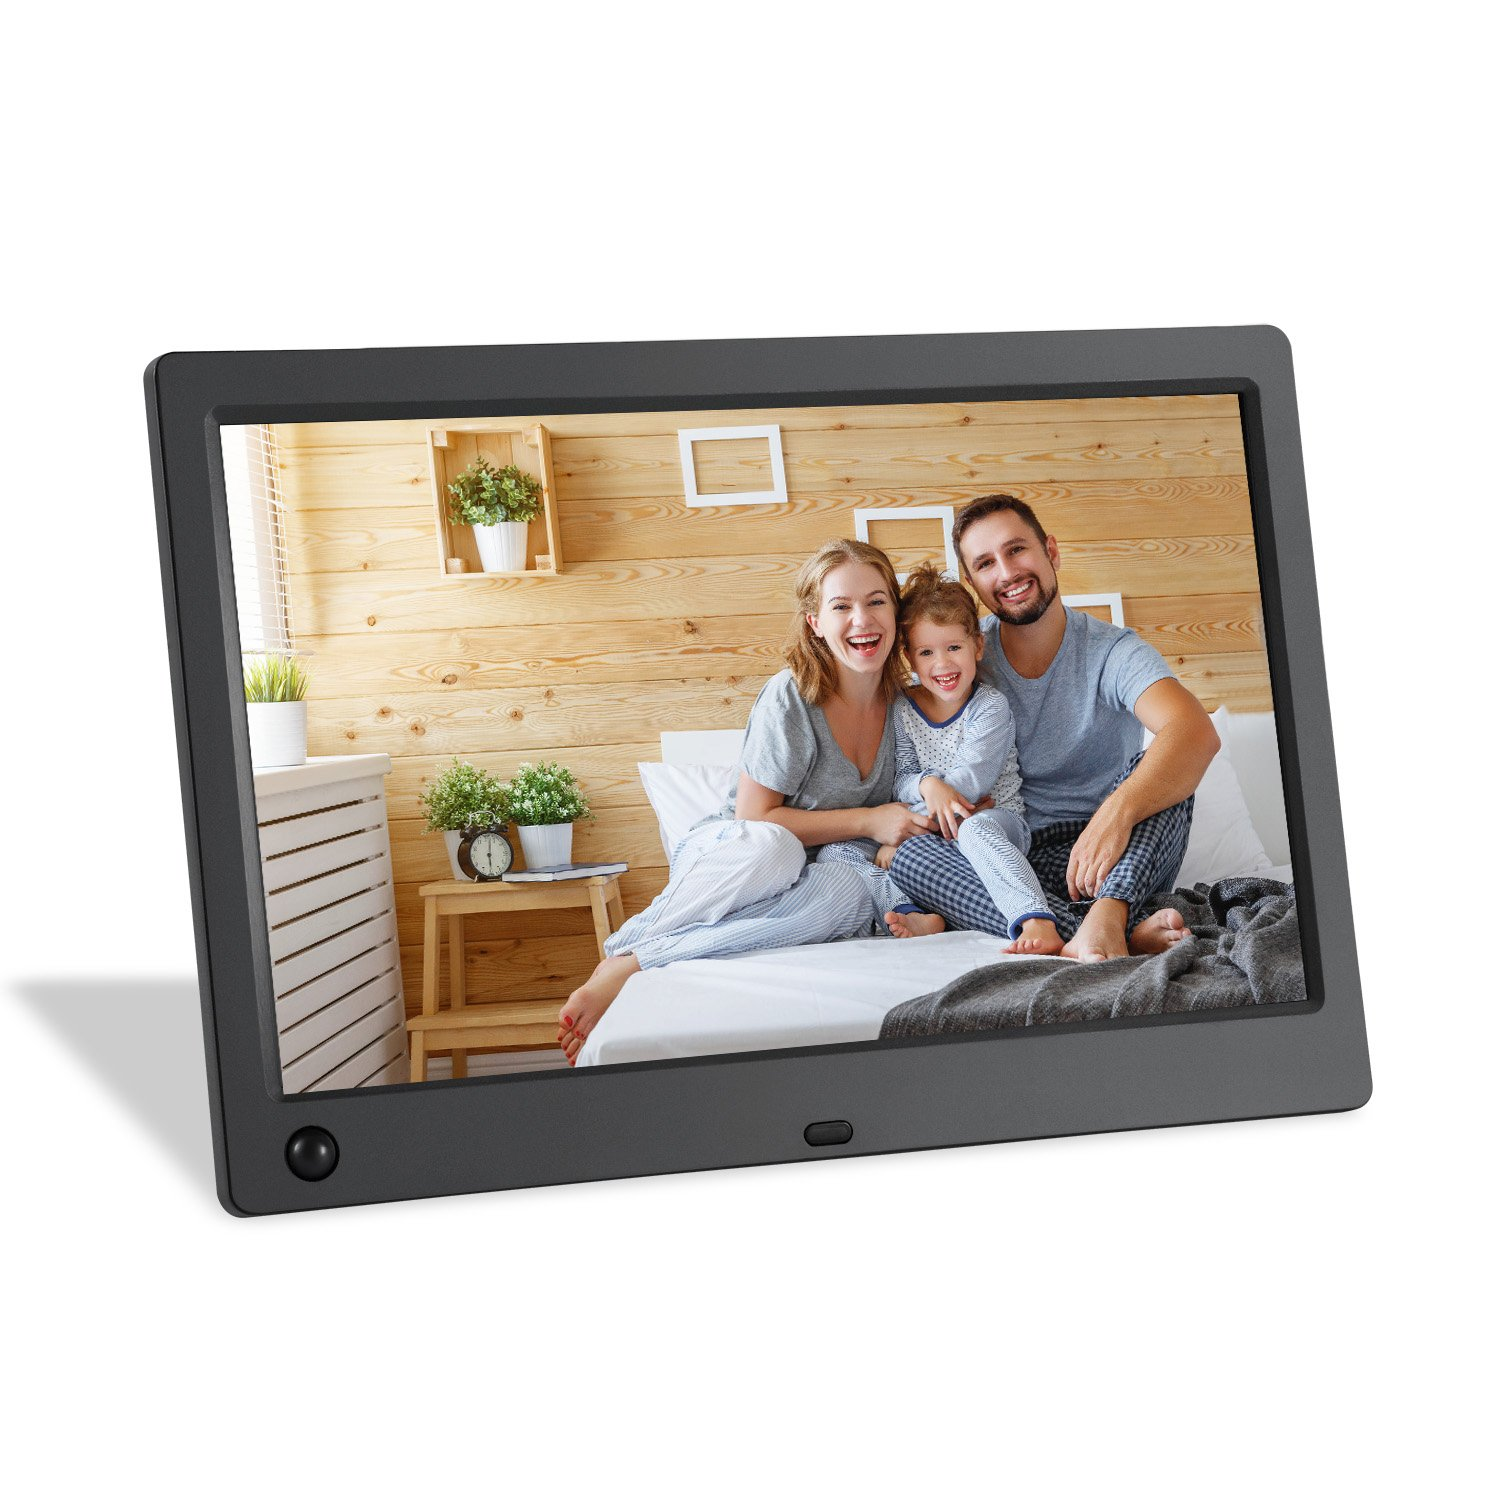 Wasserstein 10-inch Digital Photo Frame - Motion Sensor, 1024x600 High Resolution Widescreen LCD with 720p HD Video Playback Plus Calendar and Clock Function Picture Frame